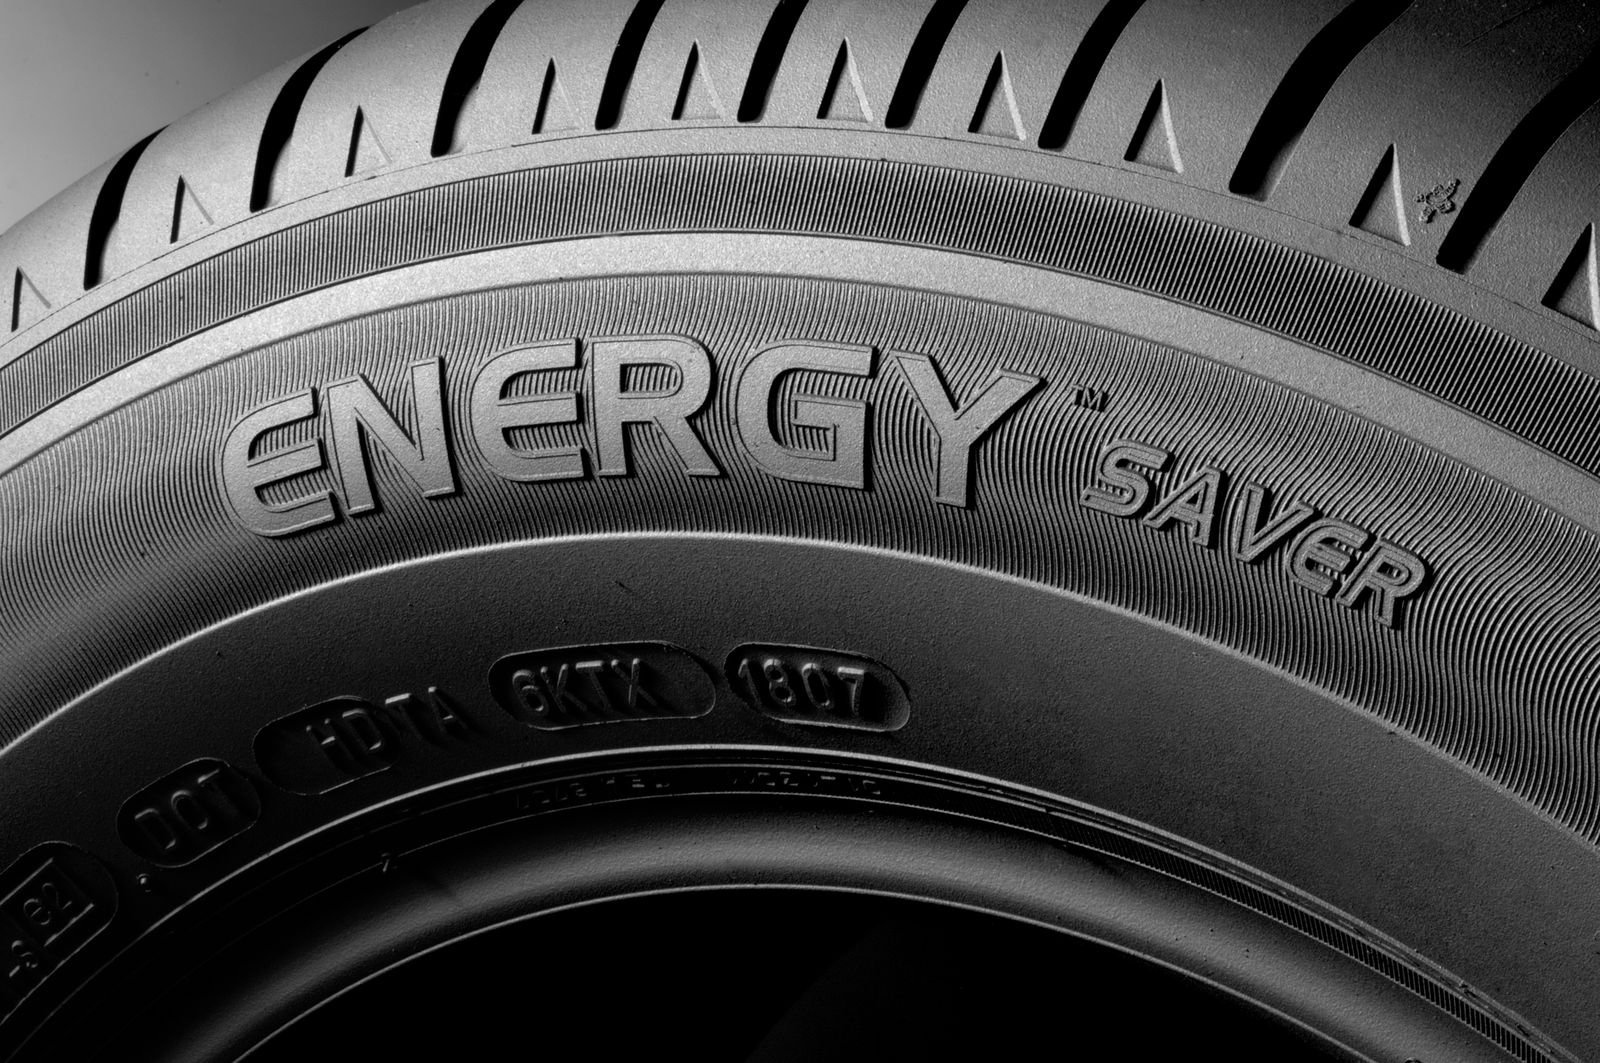 S0-Le-pneu-MICHELIN-ENERGY-Saver-41933